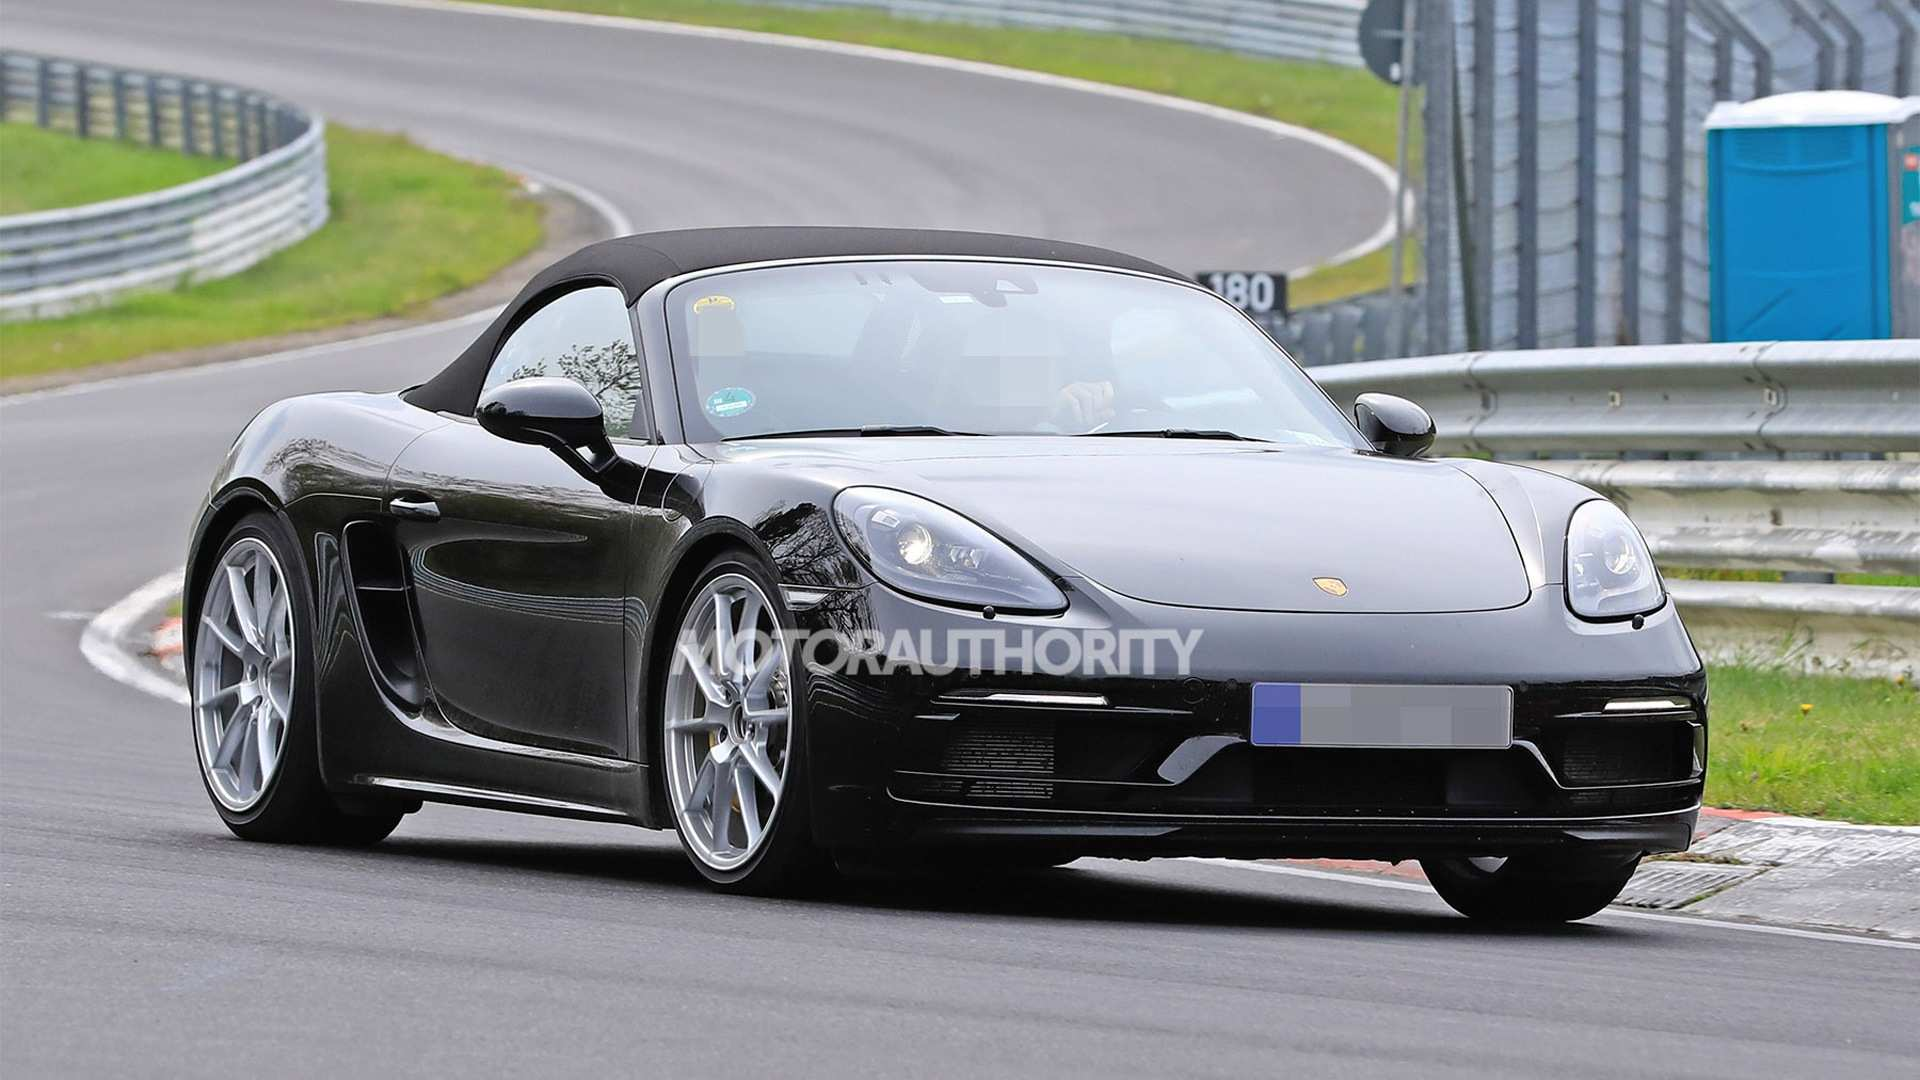 77 All New 2020 The Porsche 718 Price